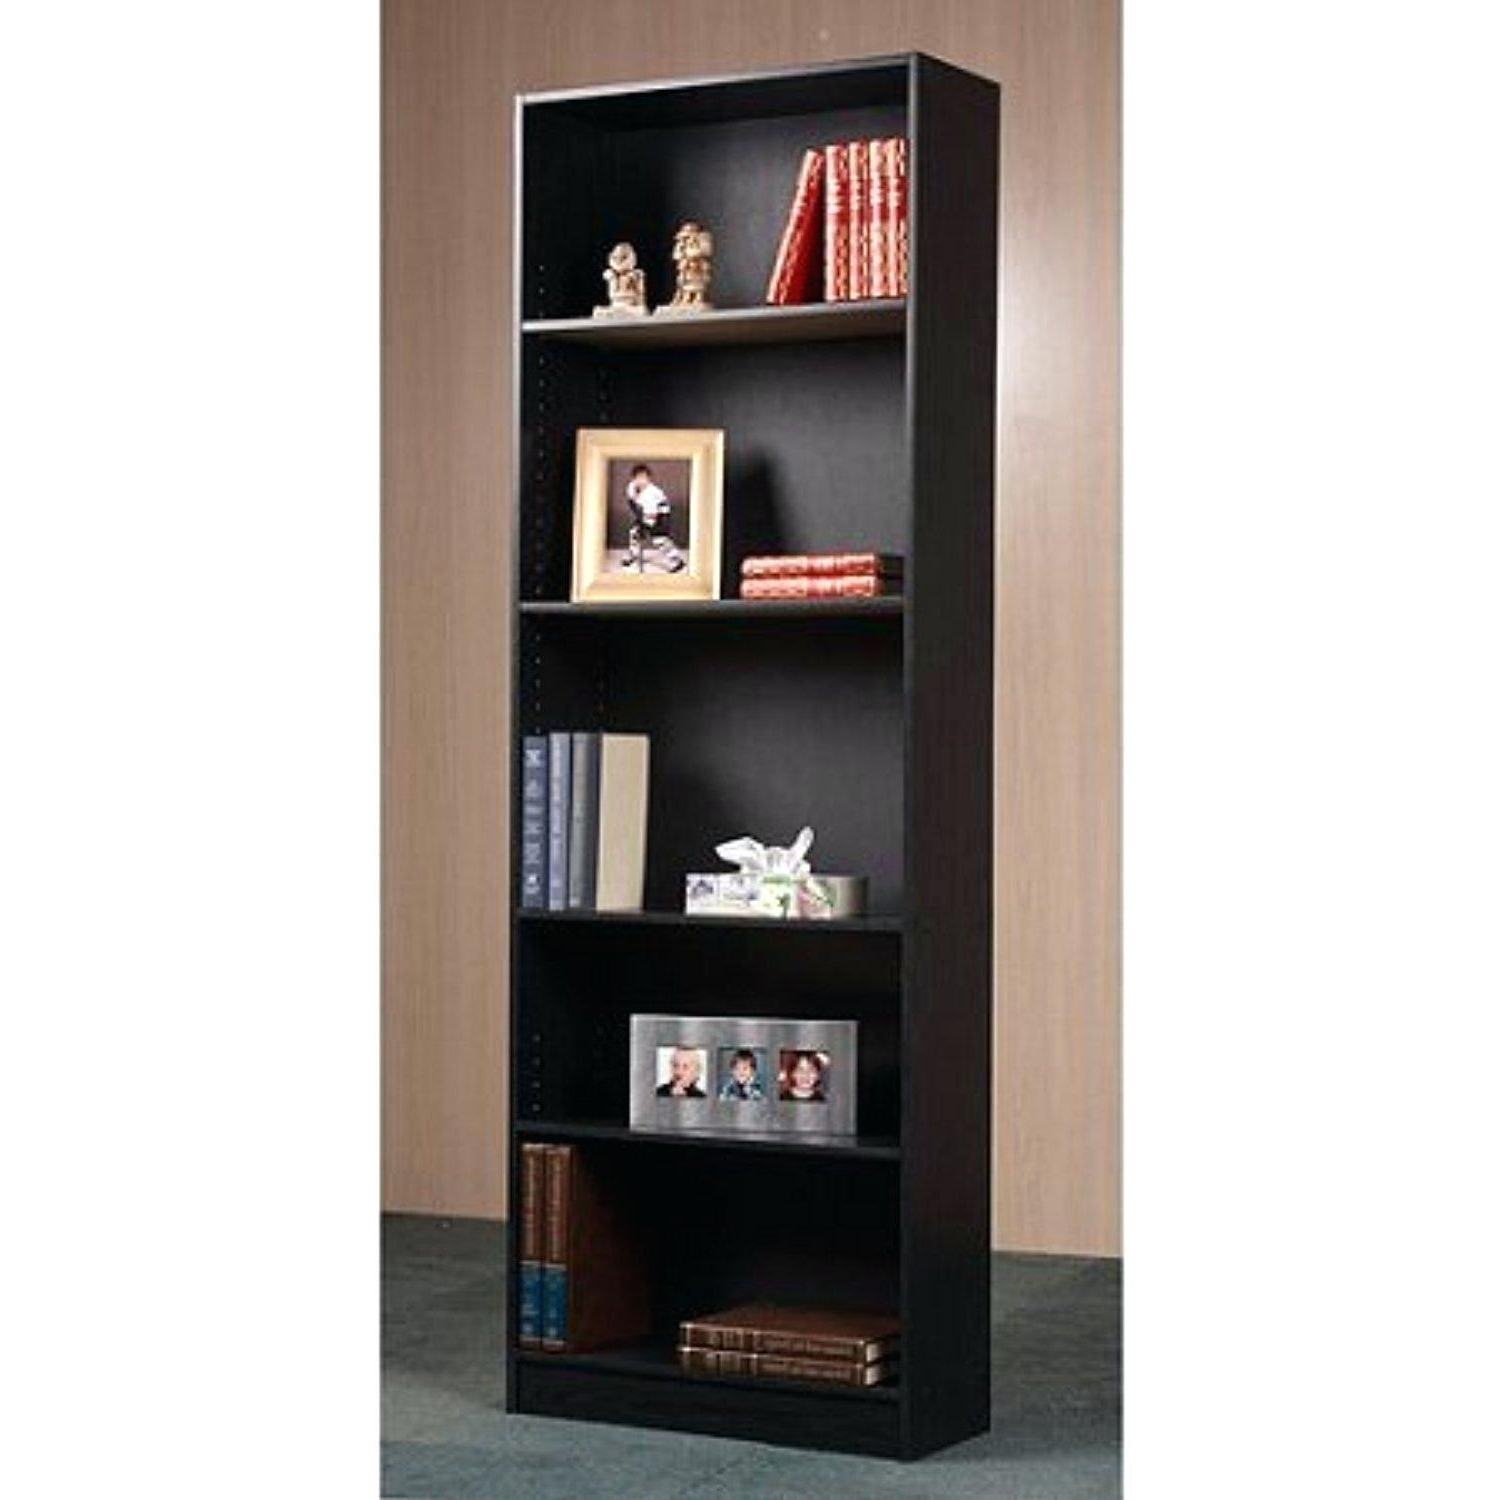 40 Inch Wide Bookcase – Zivile Regarding Most Current 40 Inch Wide Bookcases (View 12 of 15)